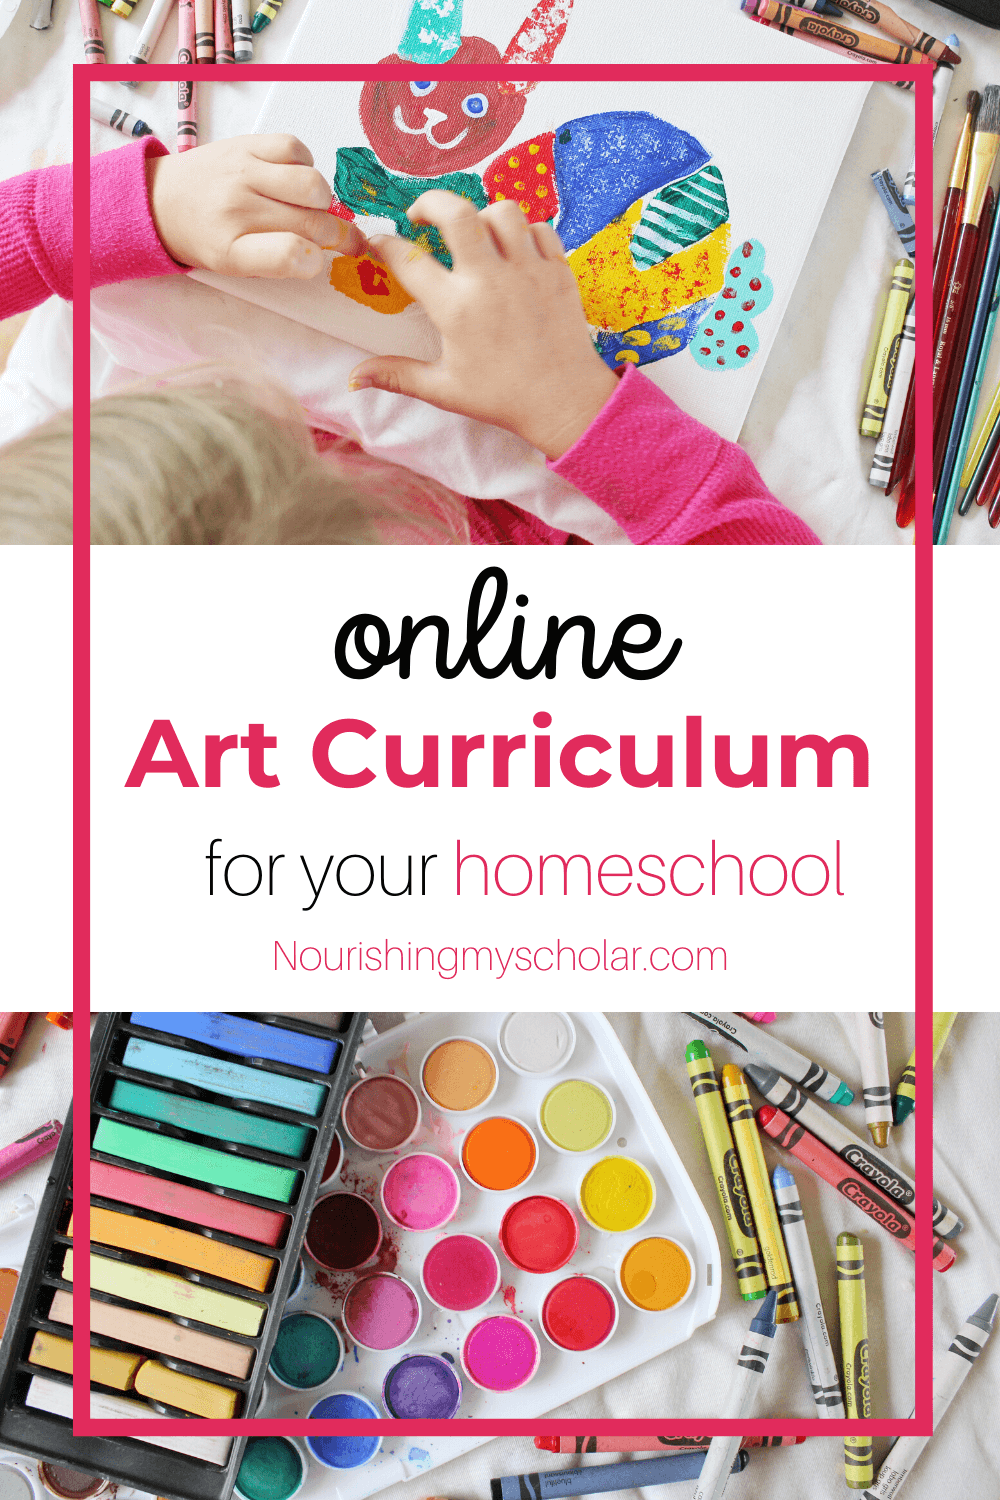 Online Art Curriculum for Your Homeschool: An Online Art Curriculum is a fabulous way to add the beauty of art class to your homeschool. This award-winning program will help your child learn the fundamentals of art in short easy lessons. #homeschool #homeschooling #homeschoolart #art #artcurriculum #onlineart #onlineartcurriculum #elementaryart